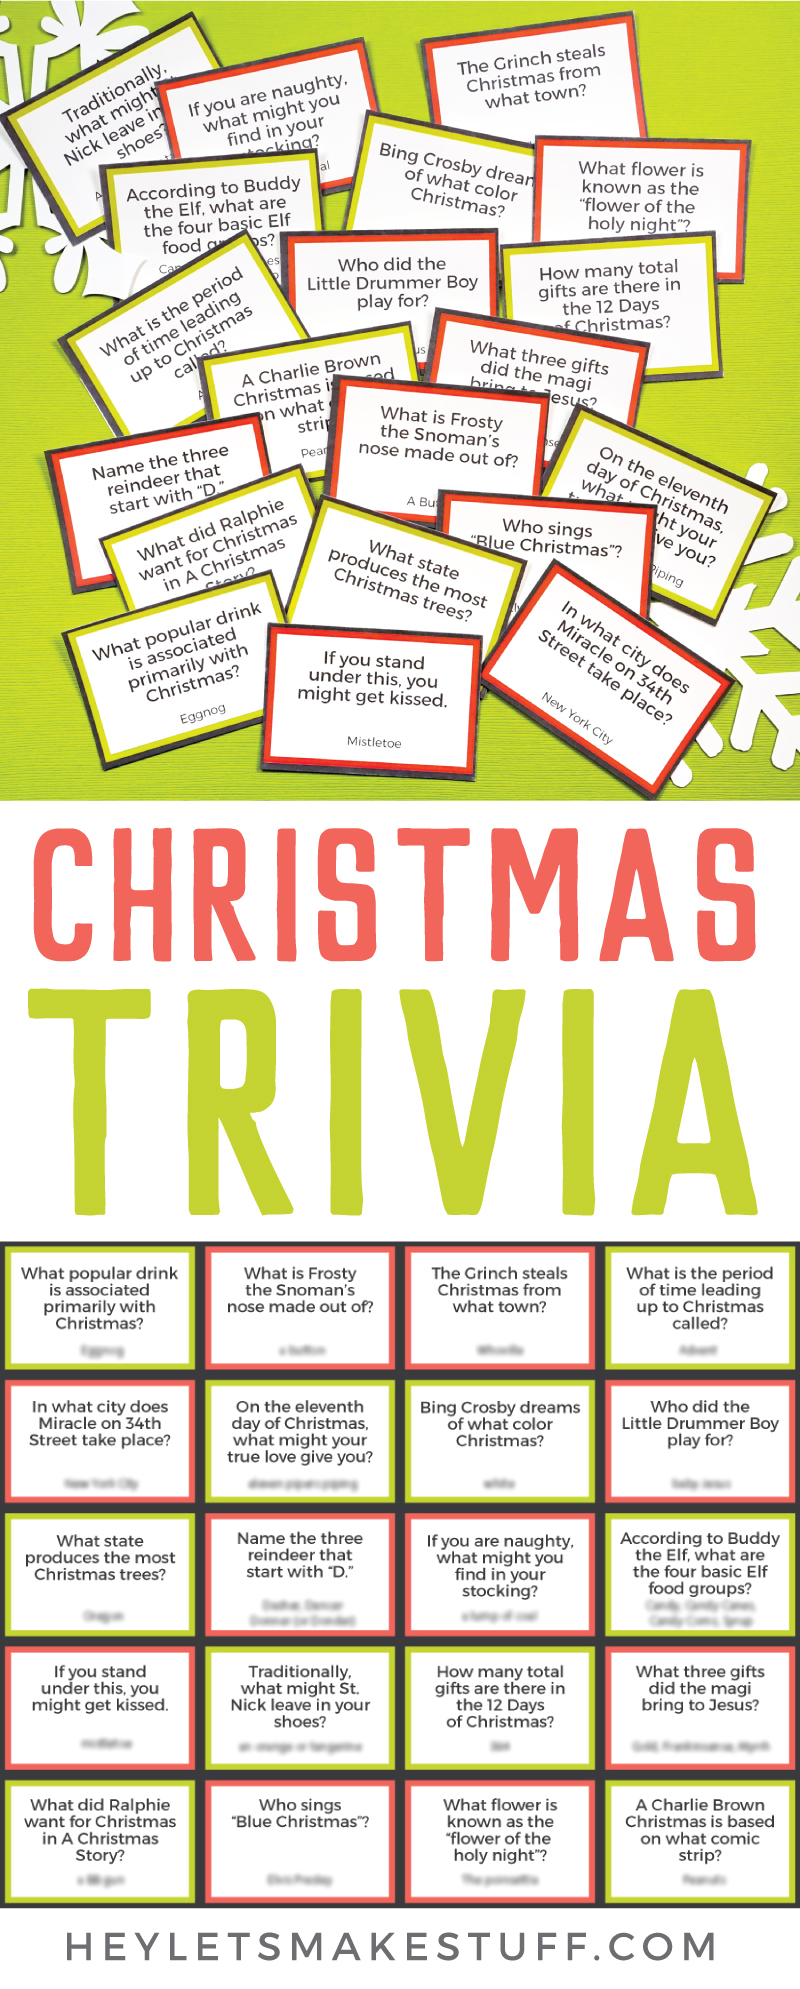 Test your knowledge of the merriest of holidays with this free printable Christmas trivia. Play with family and friends as you sip hot cocoa around a fireplace or plan a trivia night with friends for some holiday cheer! via @heyletsmakestuf